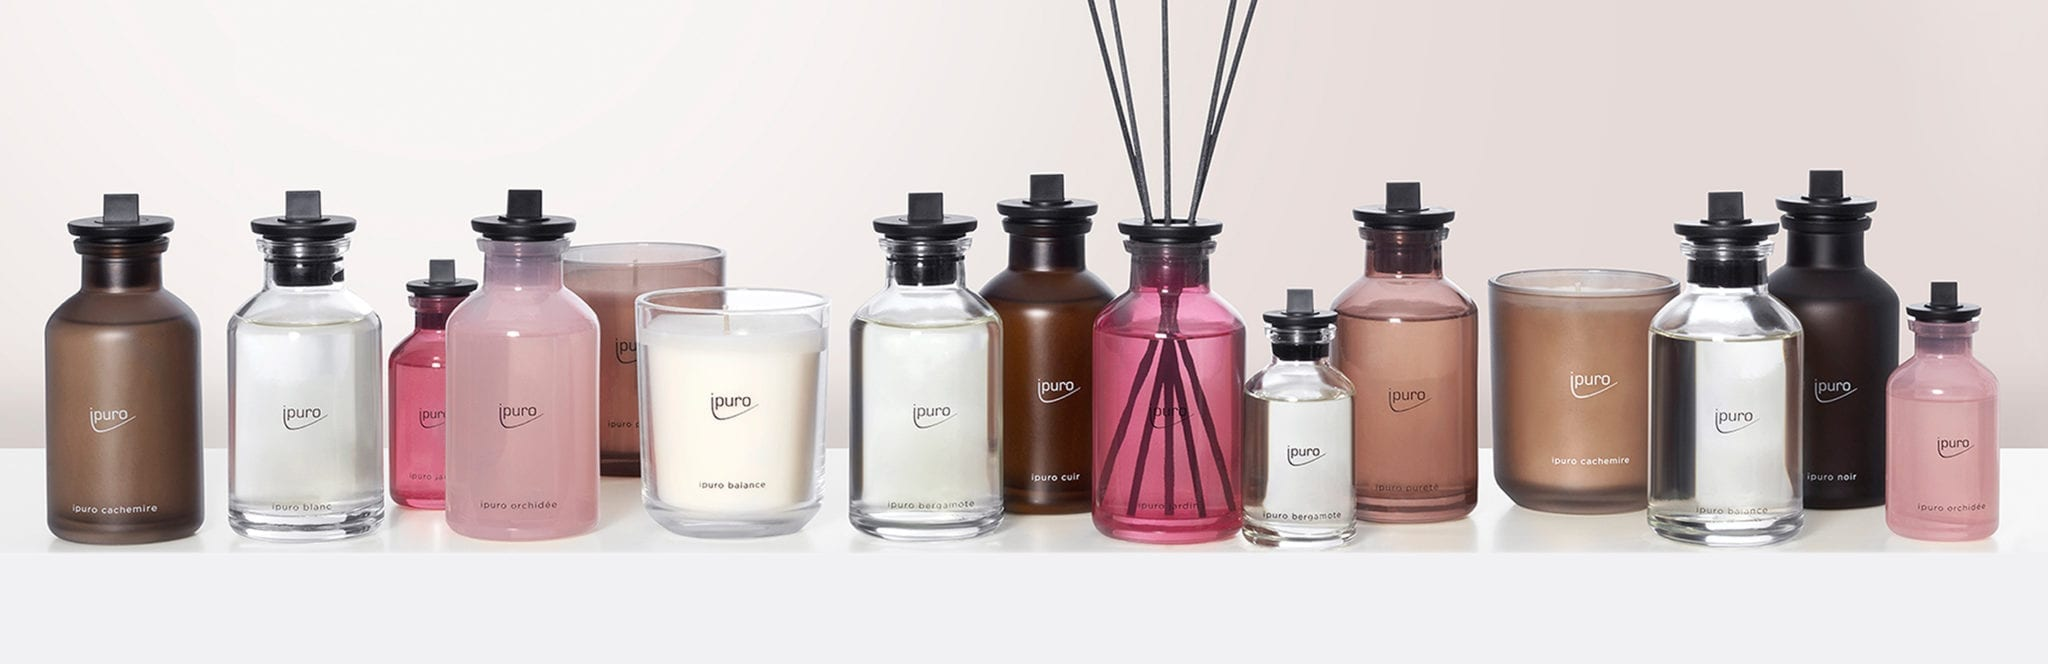 ipuro room scent flasks and scented candles